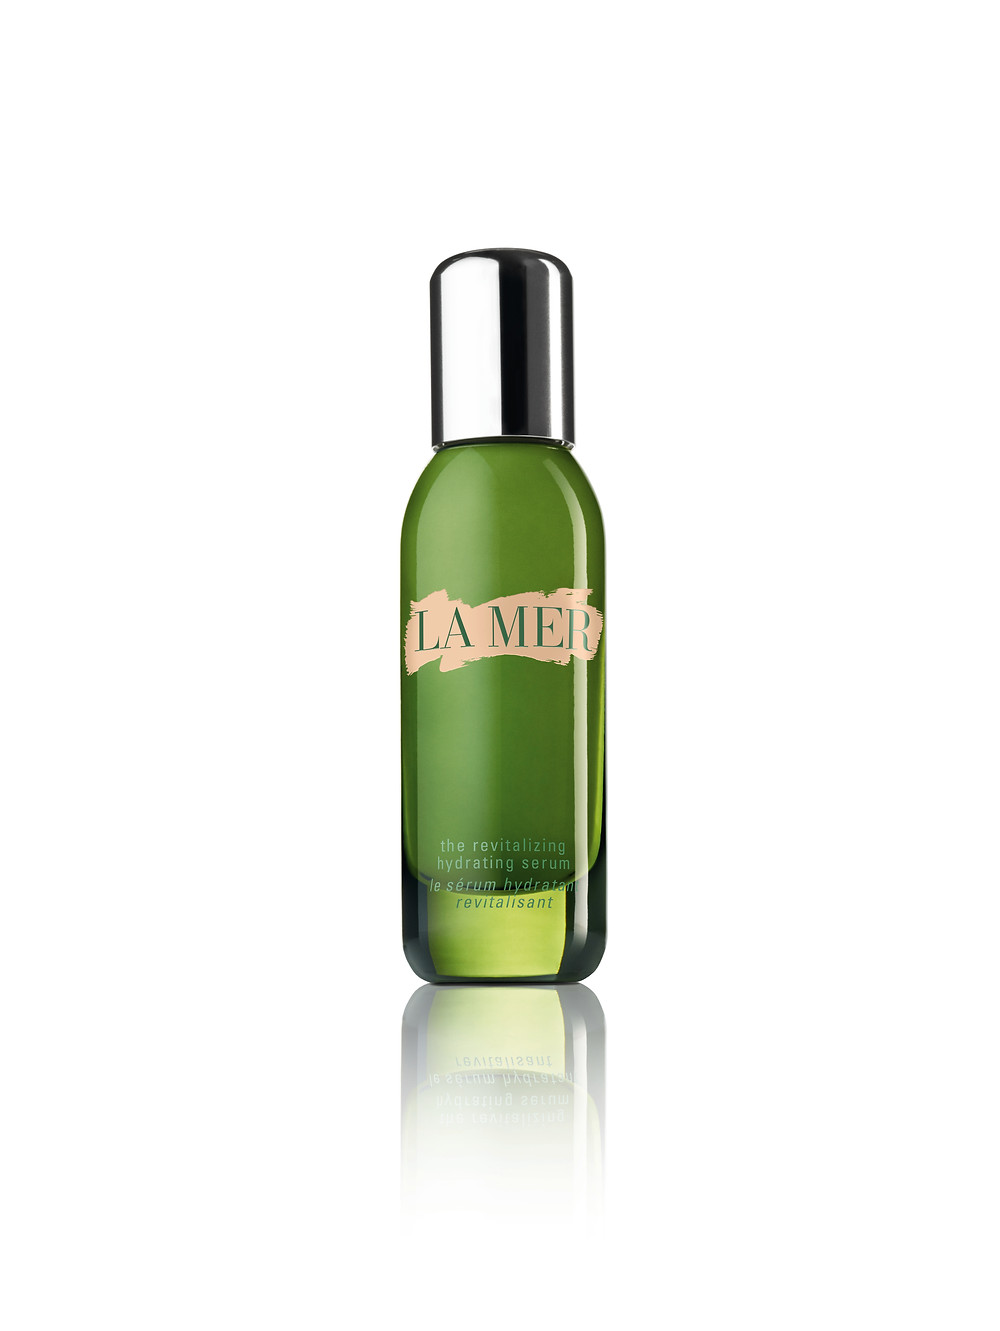 """La Mer - The Revitalizing Rehydrating Serum - This powerful age  fighter accelerates skin's natural renewal process to visibly diminish lines and wrinkles. With the nutrient-rich Miracle BrothTM, skin is re ned and rejuvenated for a firmer, younger-looking complexion. This potent serum is also powered by the Regenerating FermentTM which help skin trigger its natural production of collagen, elastin and other """"youth proteins."""" Skin looks revitalised on contact and, over time, even in winter, the appearance of lines, wrinkles and pores is dramatically diminished."""